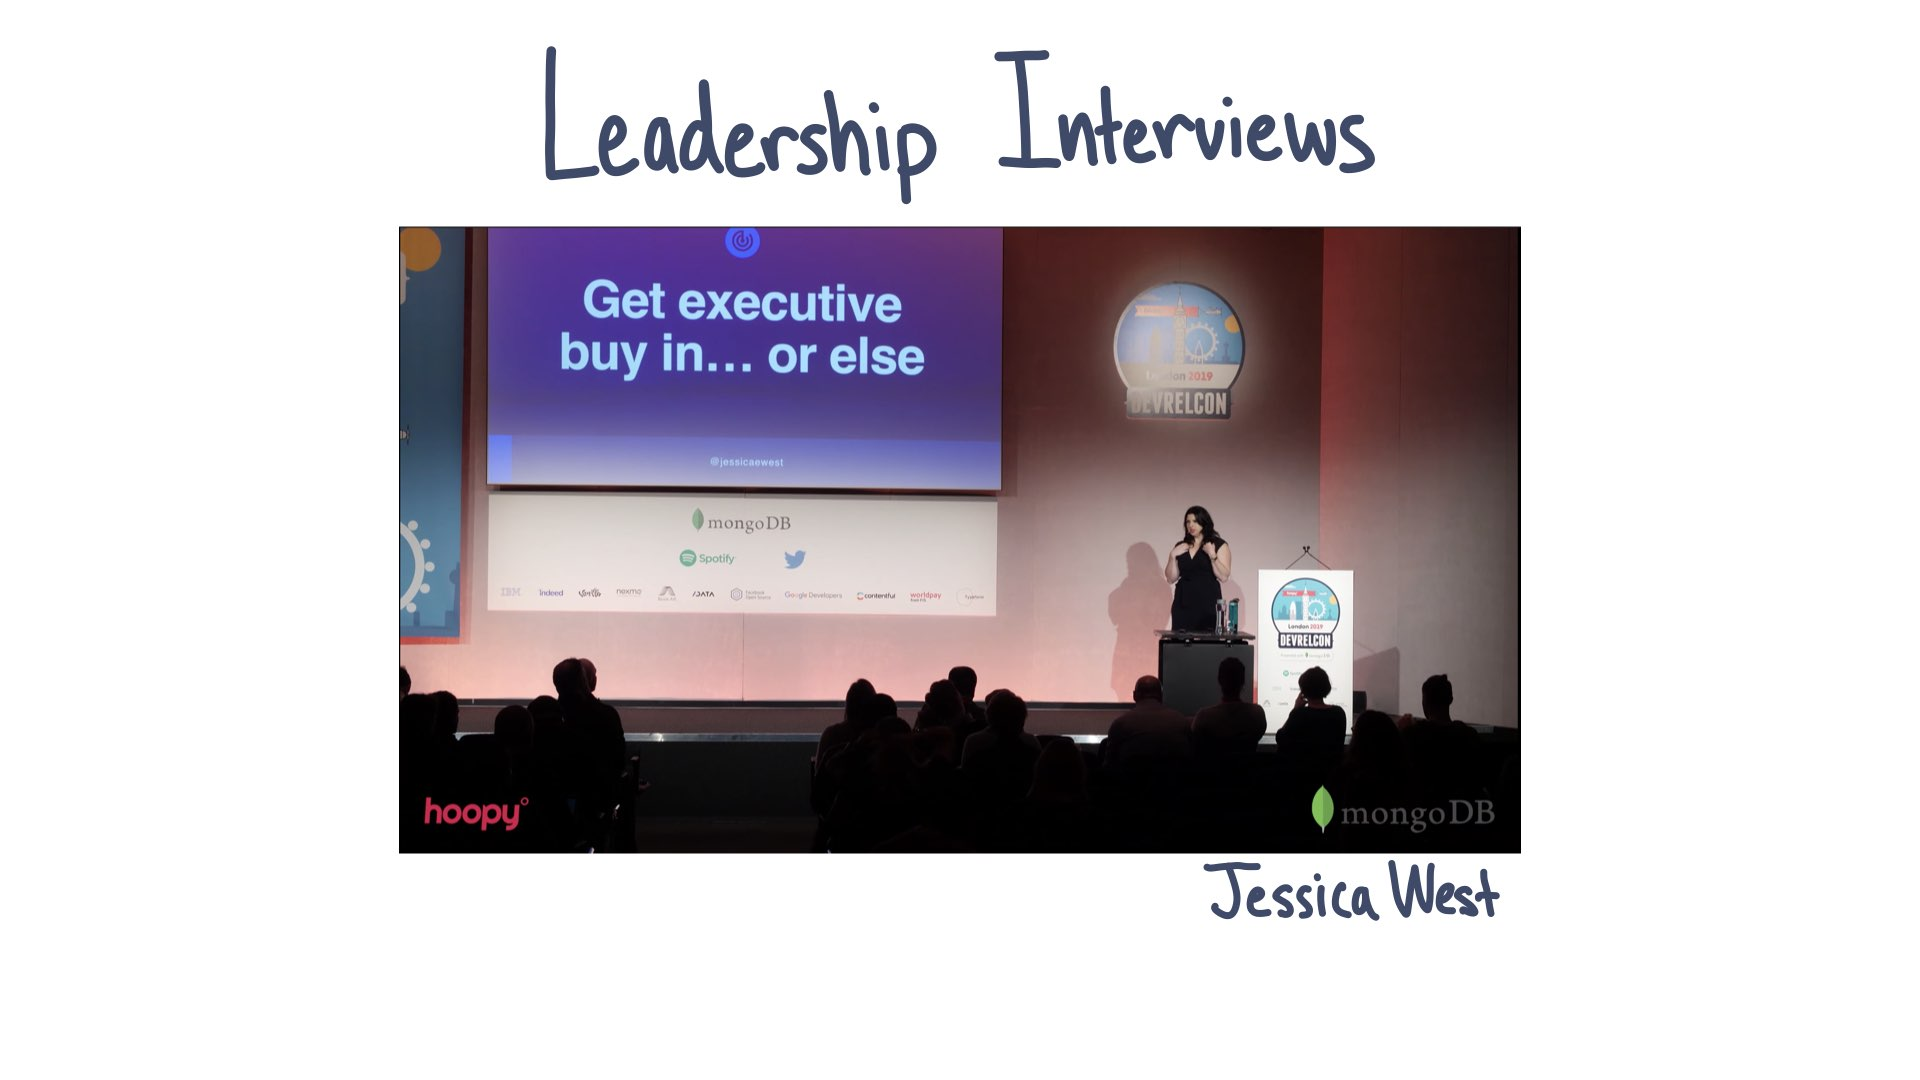 Leadership Interviews, image from talk by Jessica West